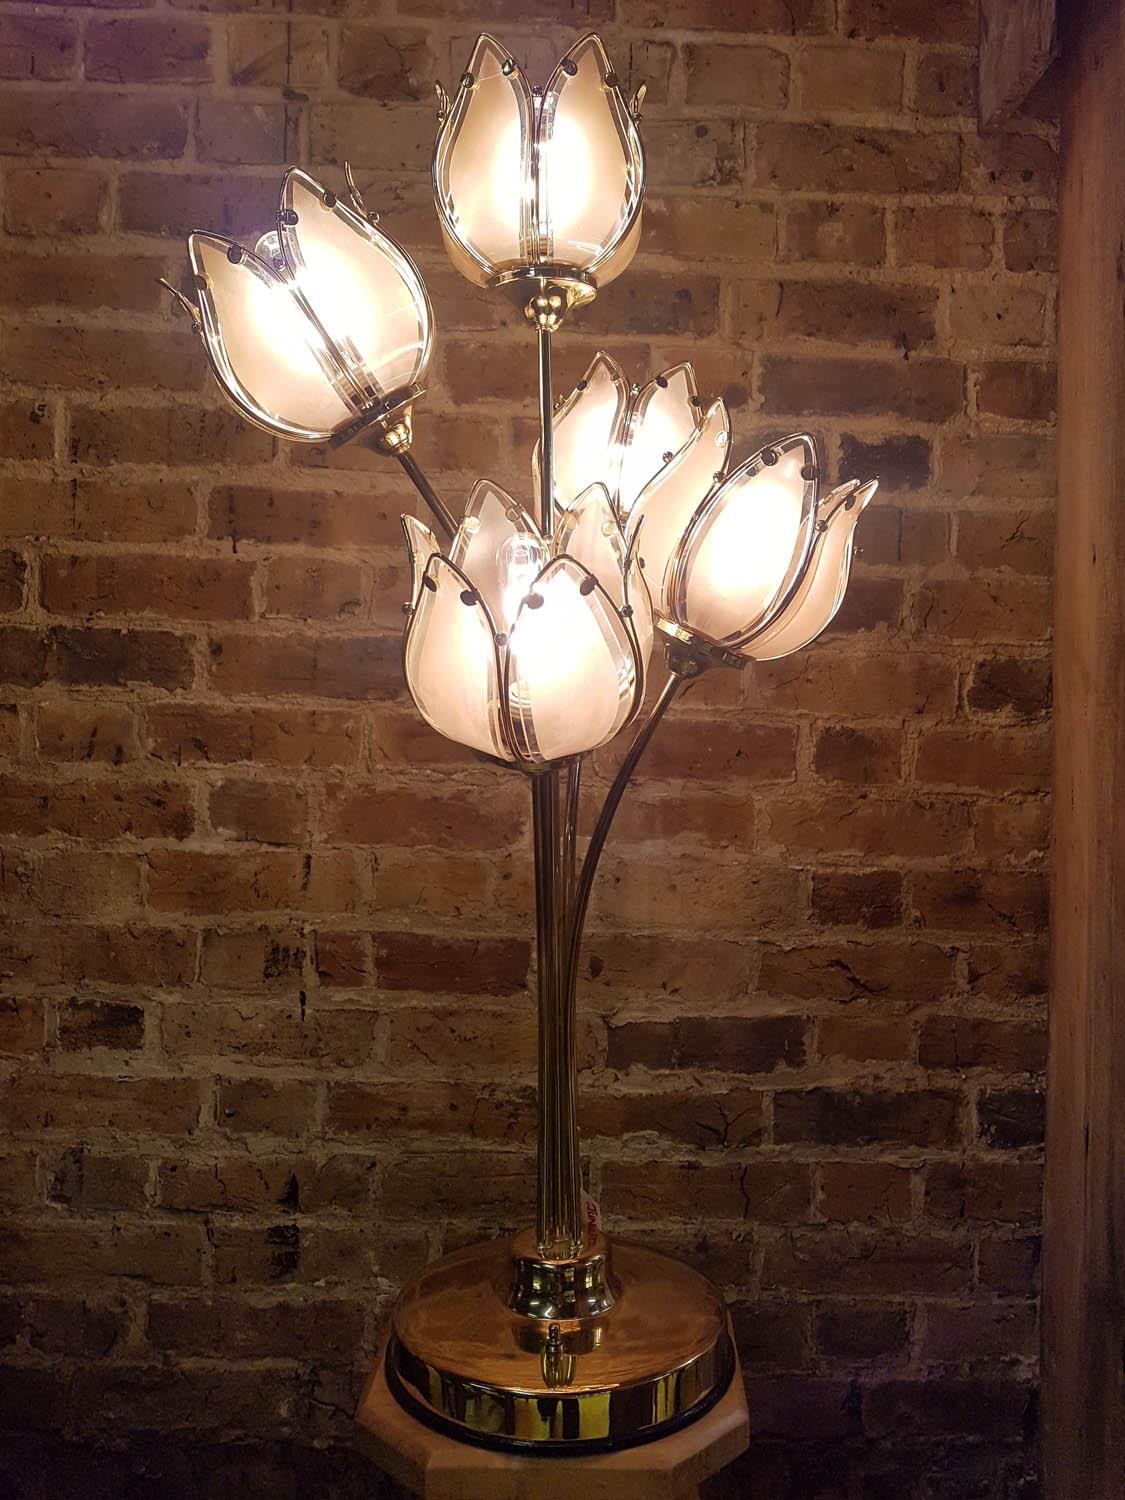 Junk Deluxe Belgian Xl Flower Table Lamp Four Way Switch Design Brass Plated With Five Pink Tinted Glass Shade Allows For The To Be Switched Off Two Flowers Lit